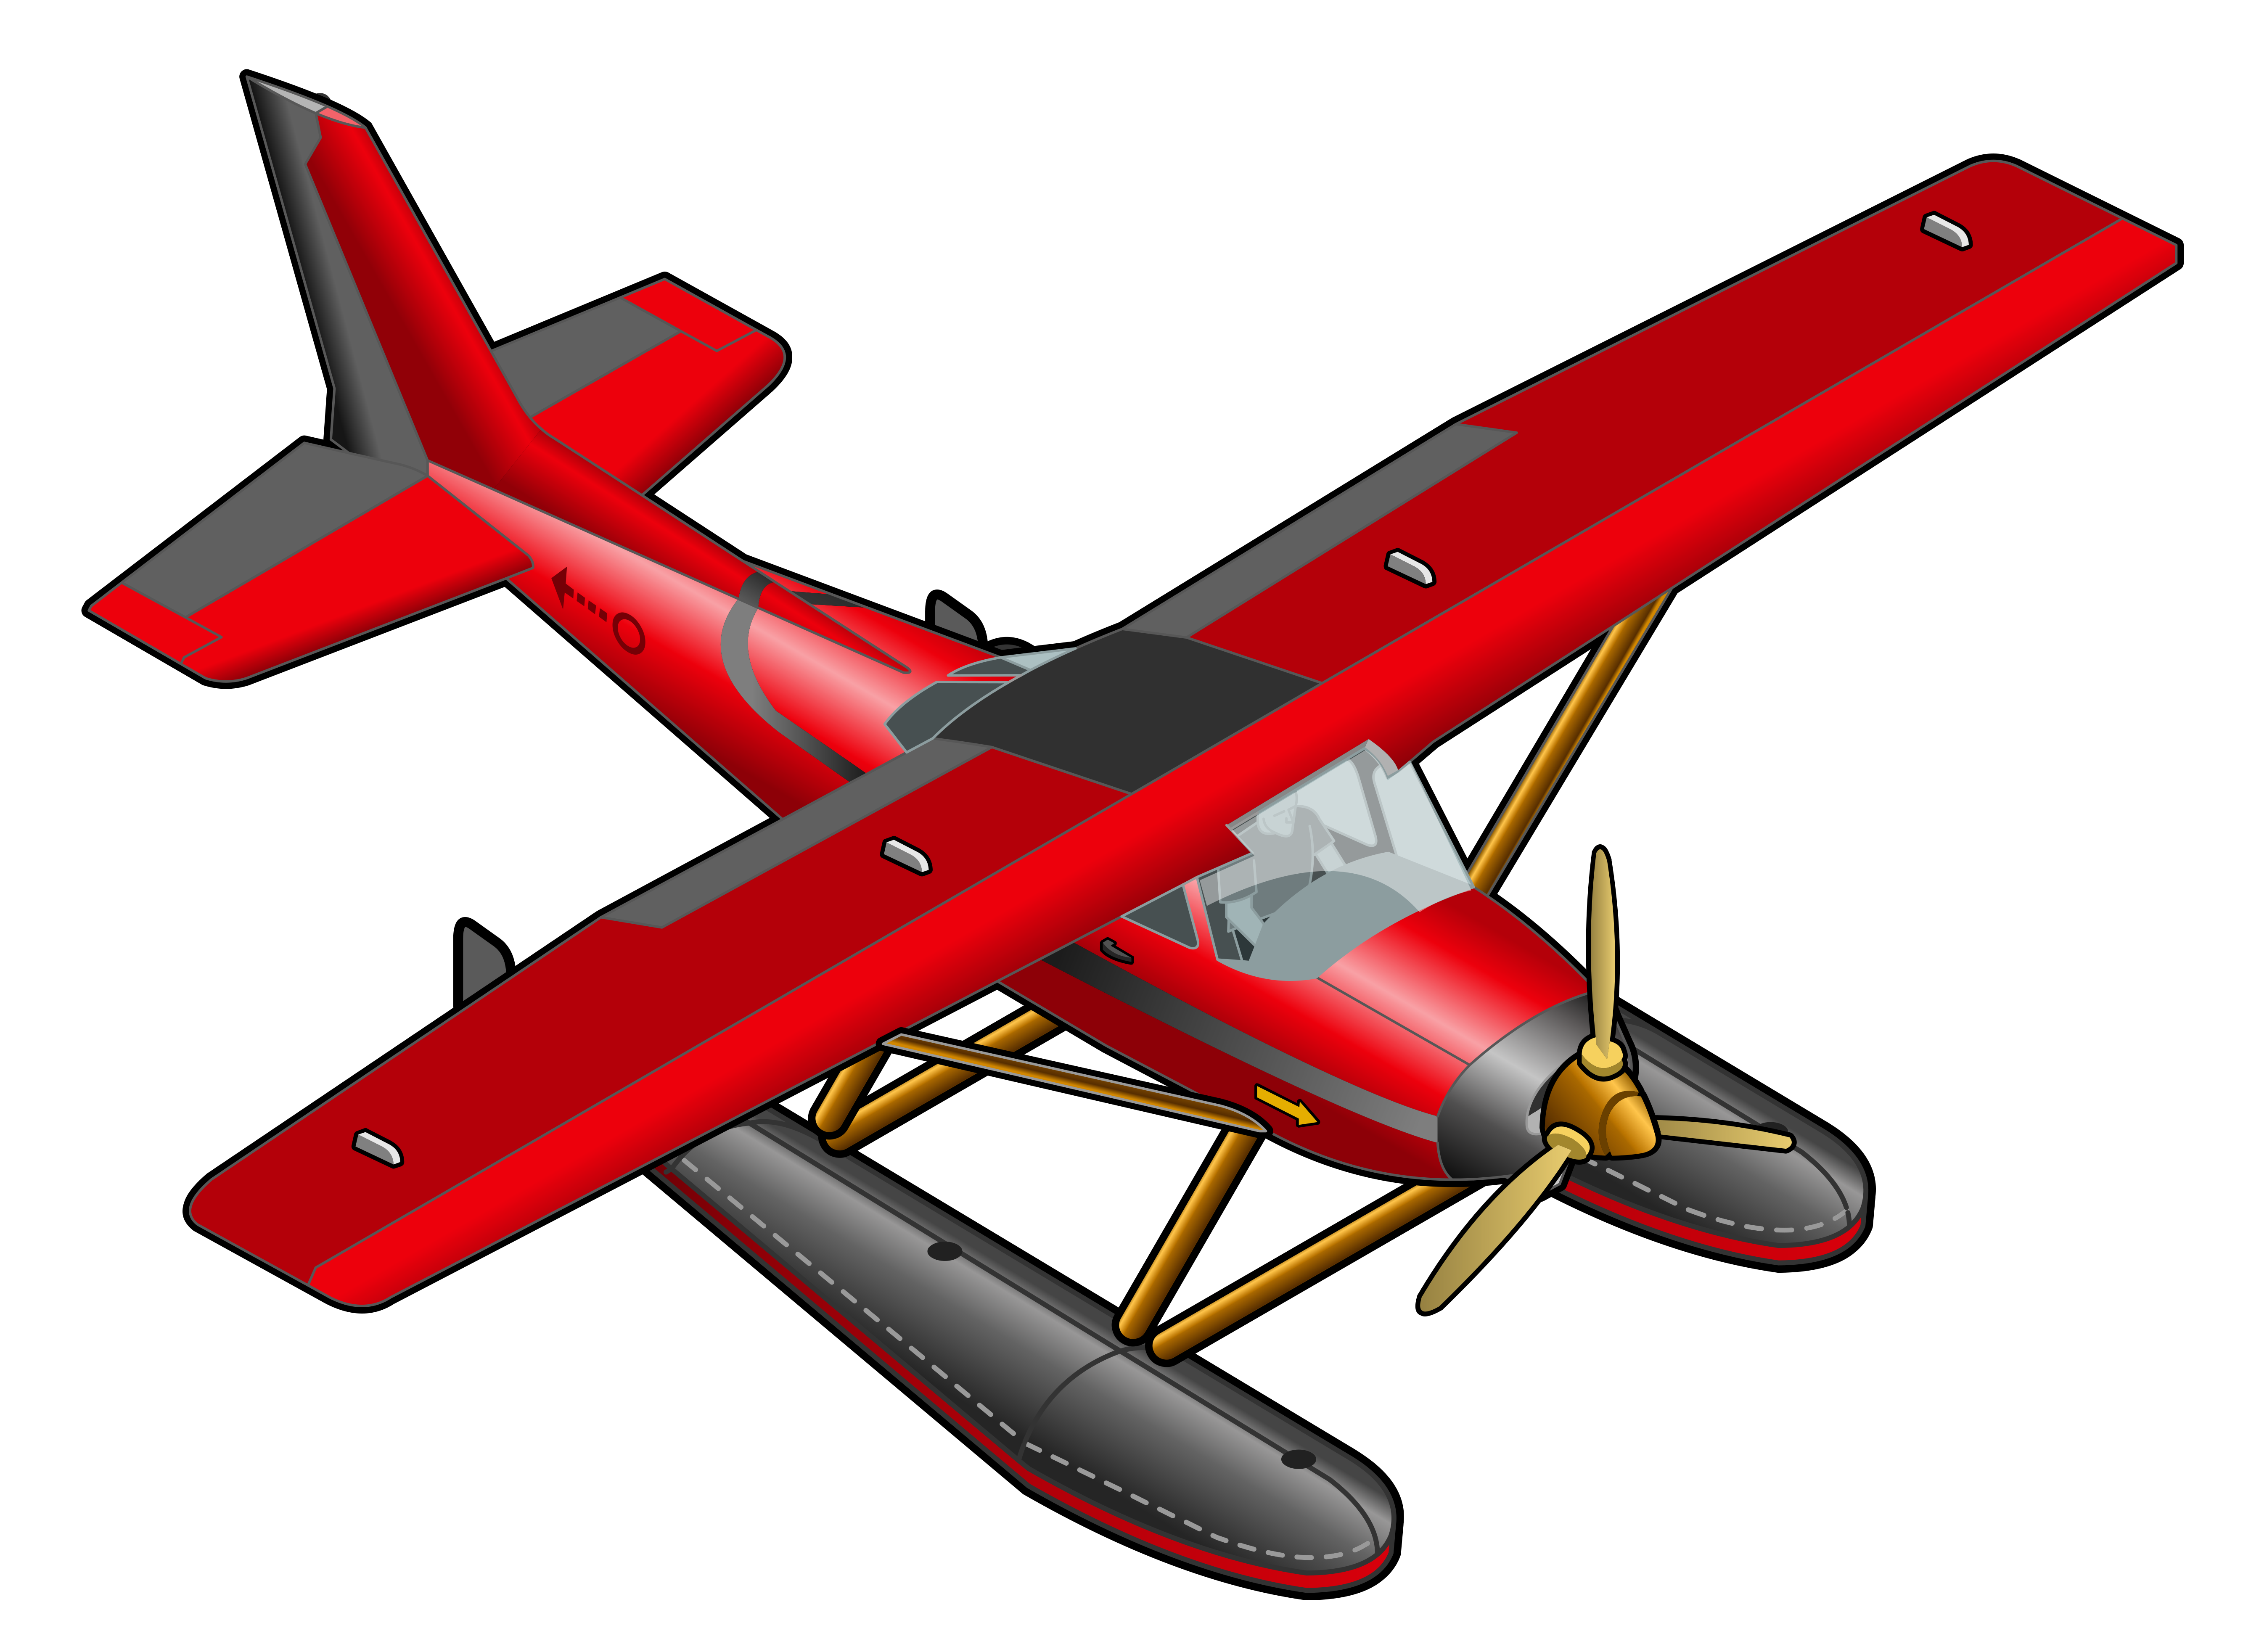 Byplane clipart png image freeuse library Red Plane Transparent PNG Clipart | Gallery Yopriceville - High ... image freeuse library